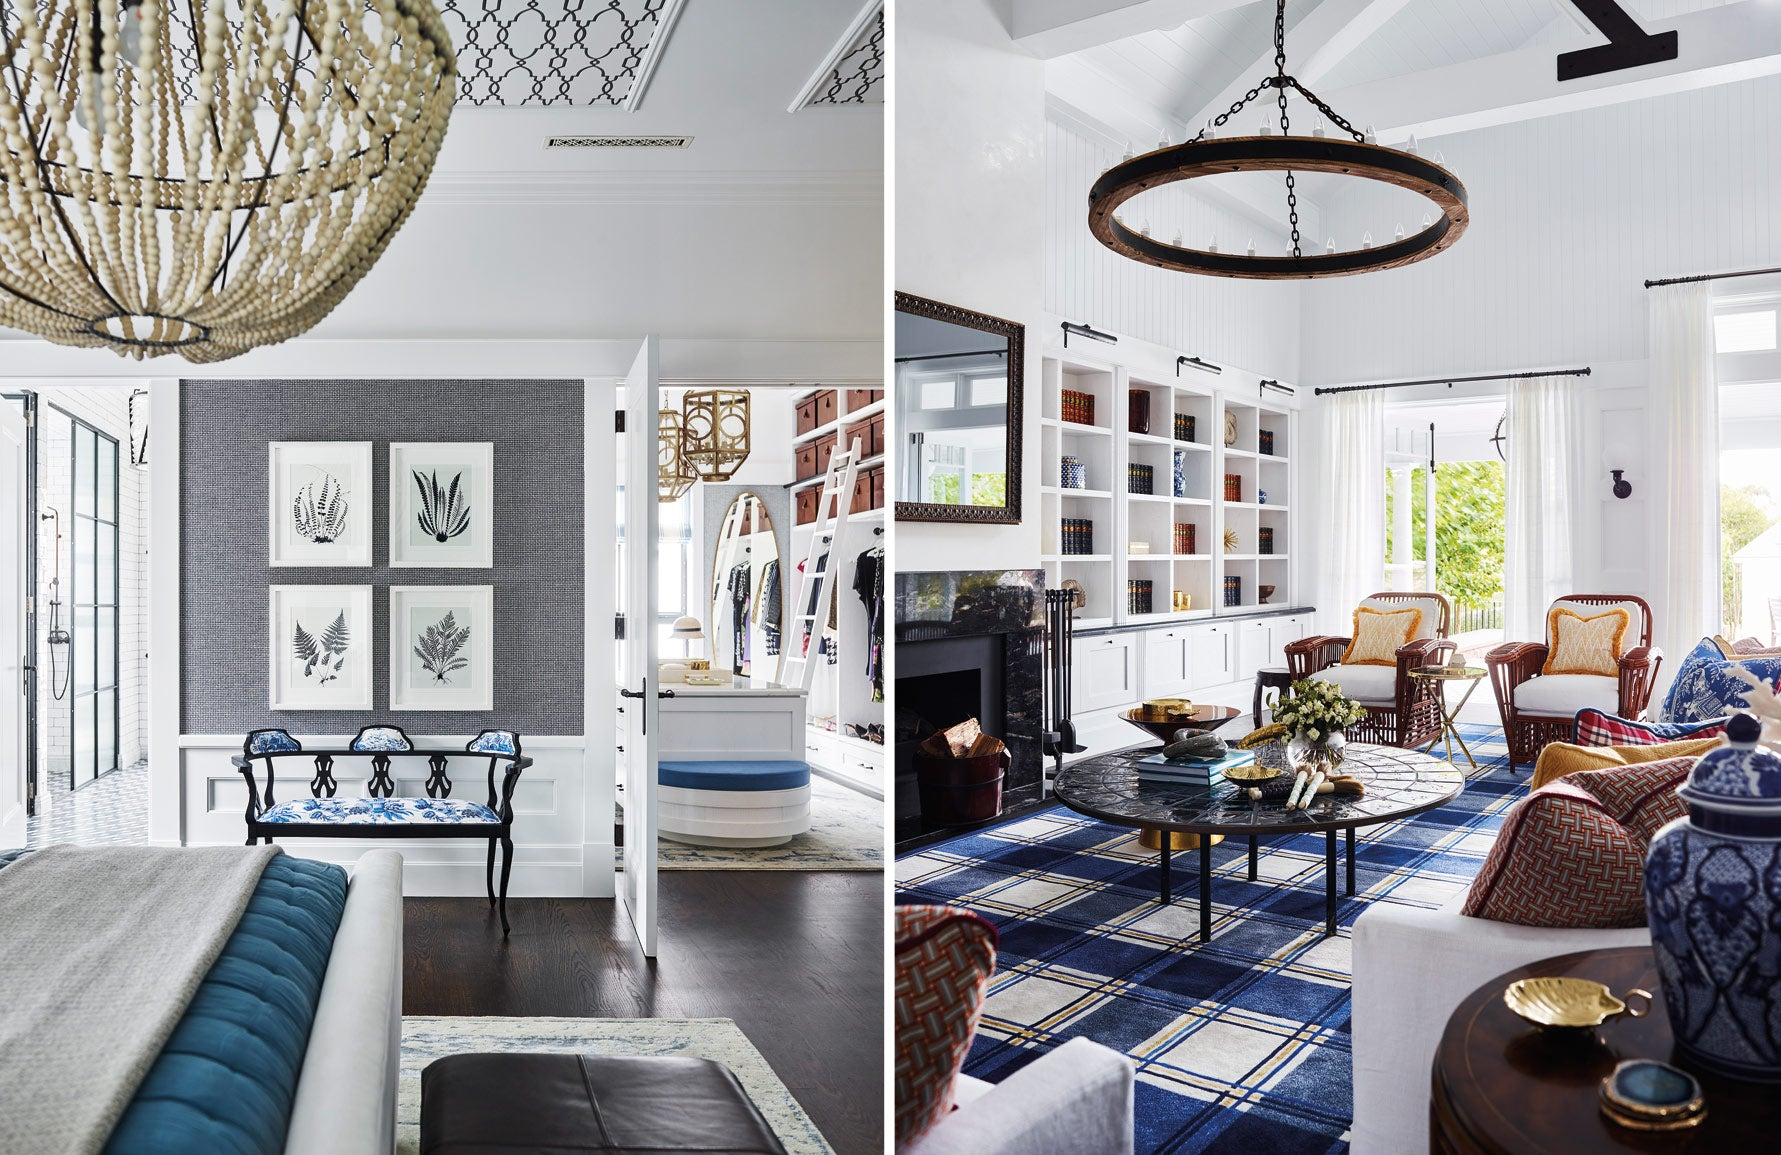 Greg Natale | Blue and White Rooms | The Luxurist | LuxDeco.com